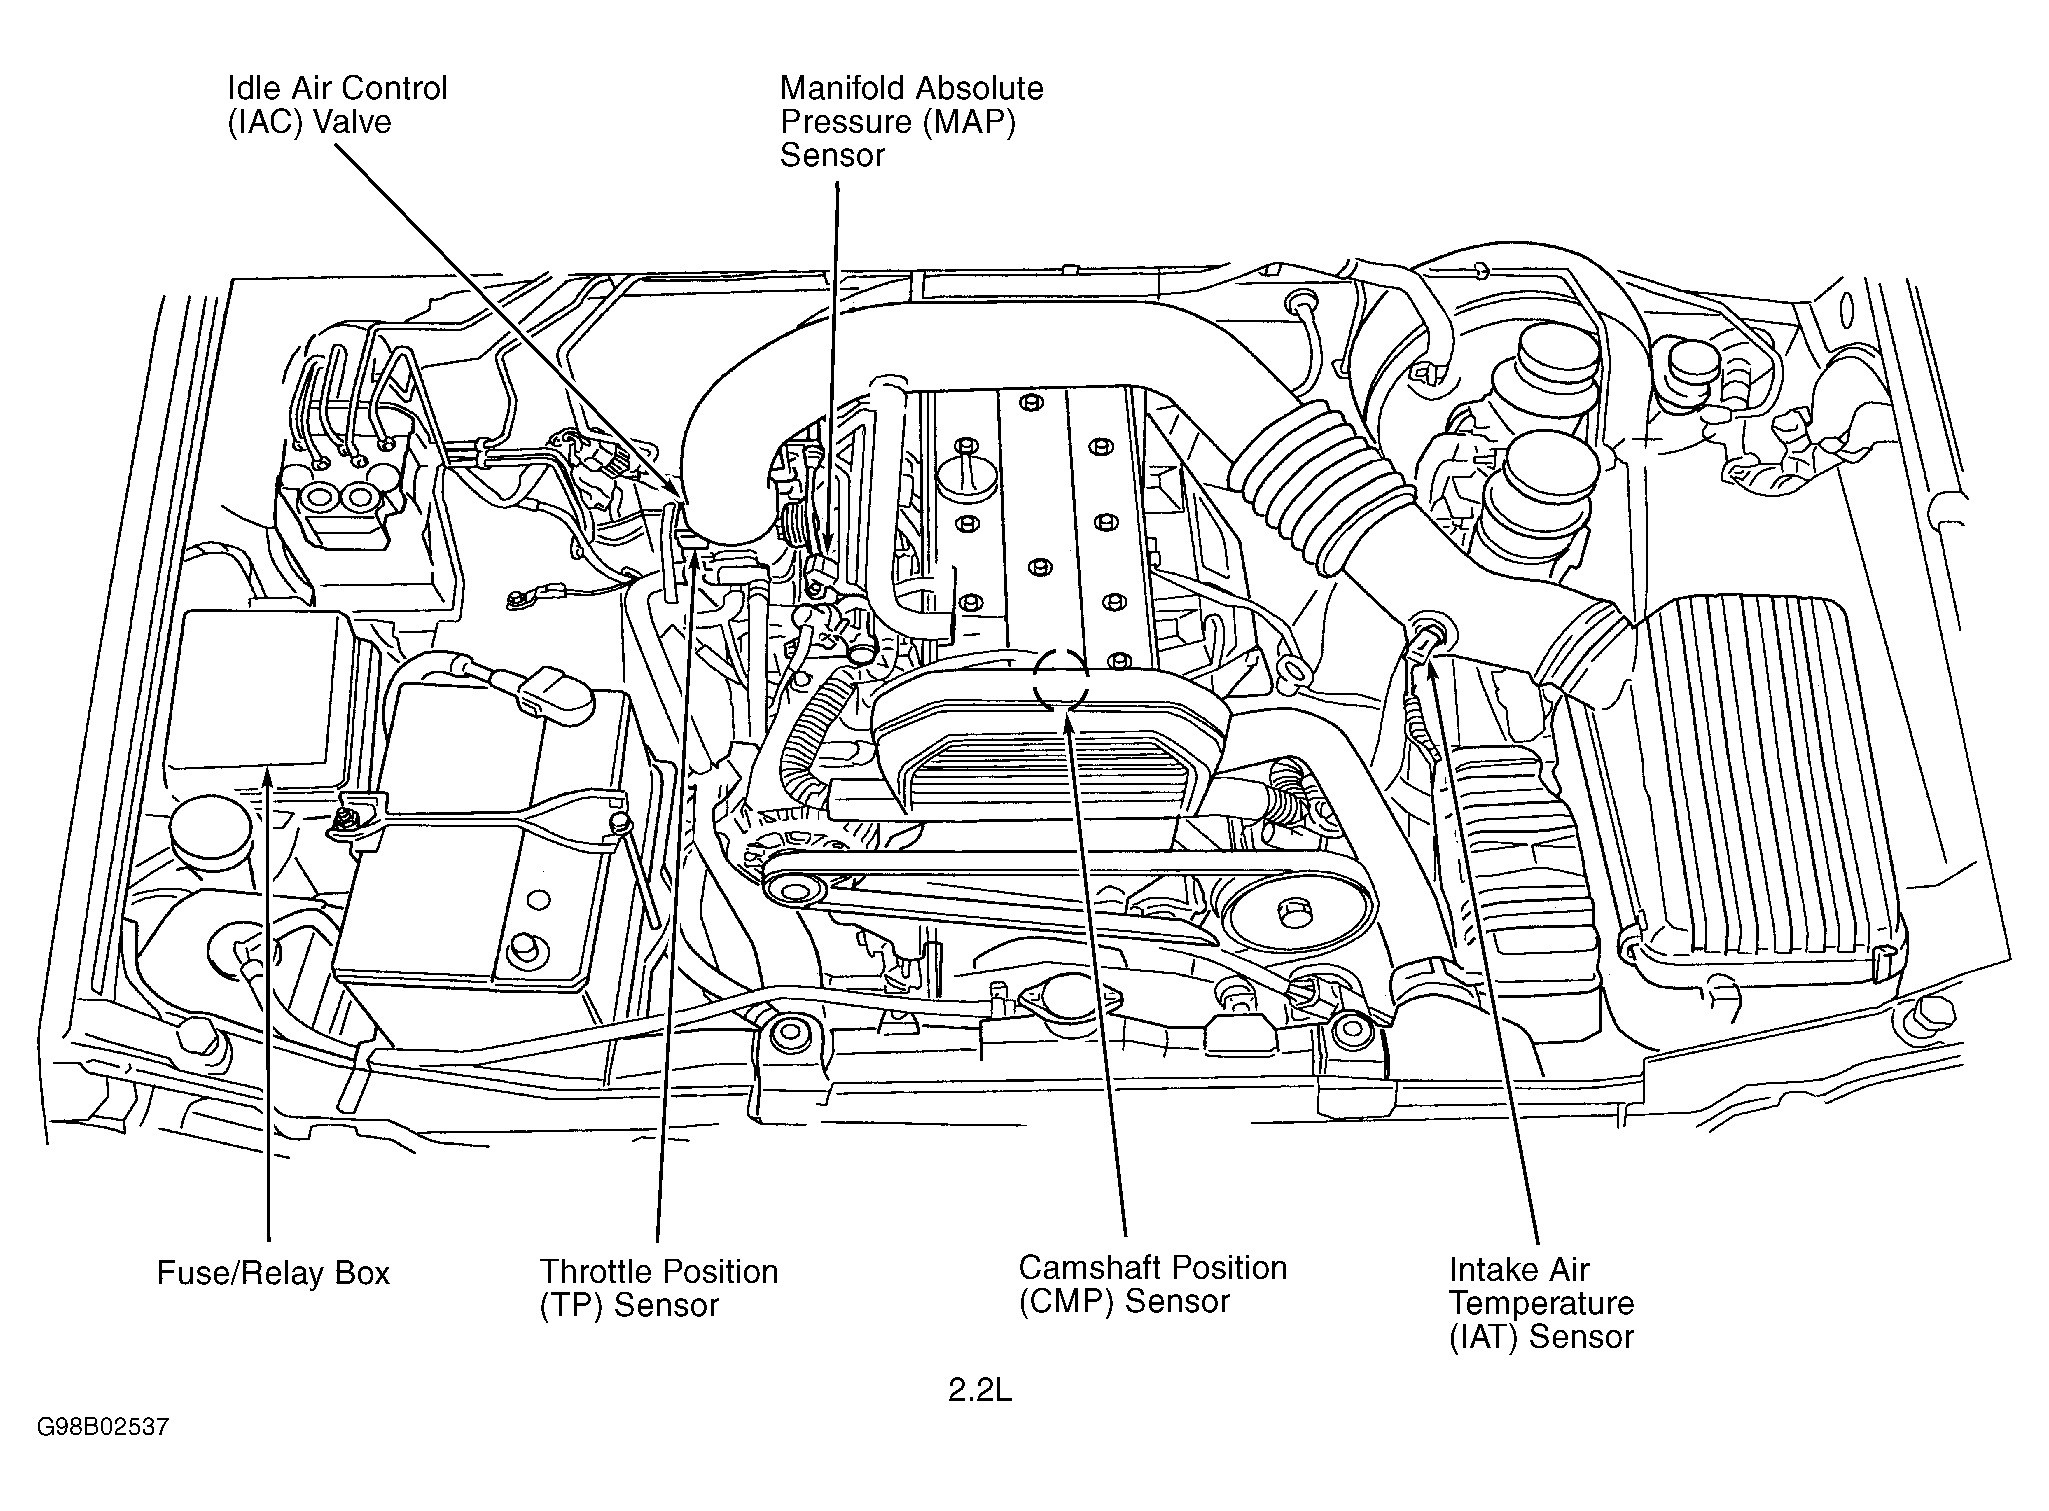 2001 isuzu Rodeo Engine Diagram Camshaft Position Sensor How Do I Change the Camshaft Position Of 2001 isuzu Rodeo Engine Diagram